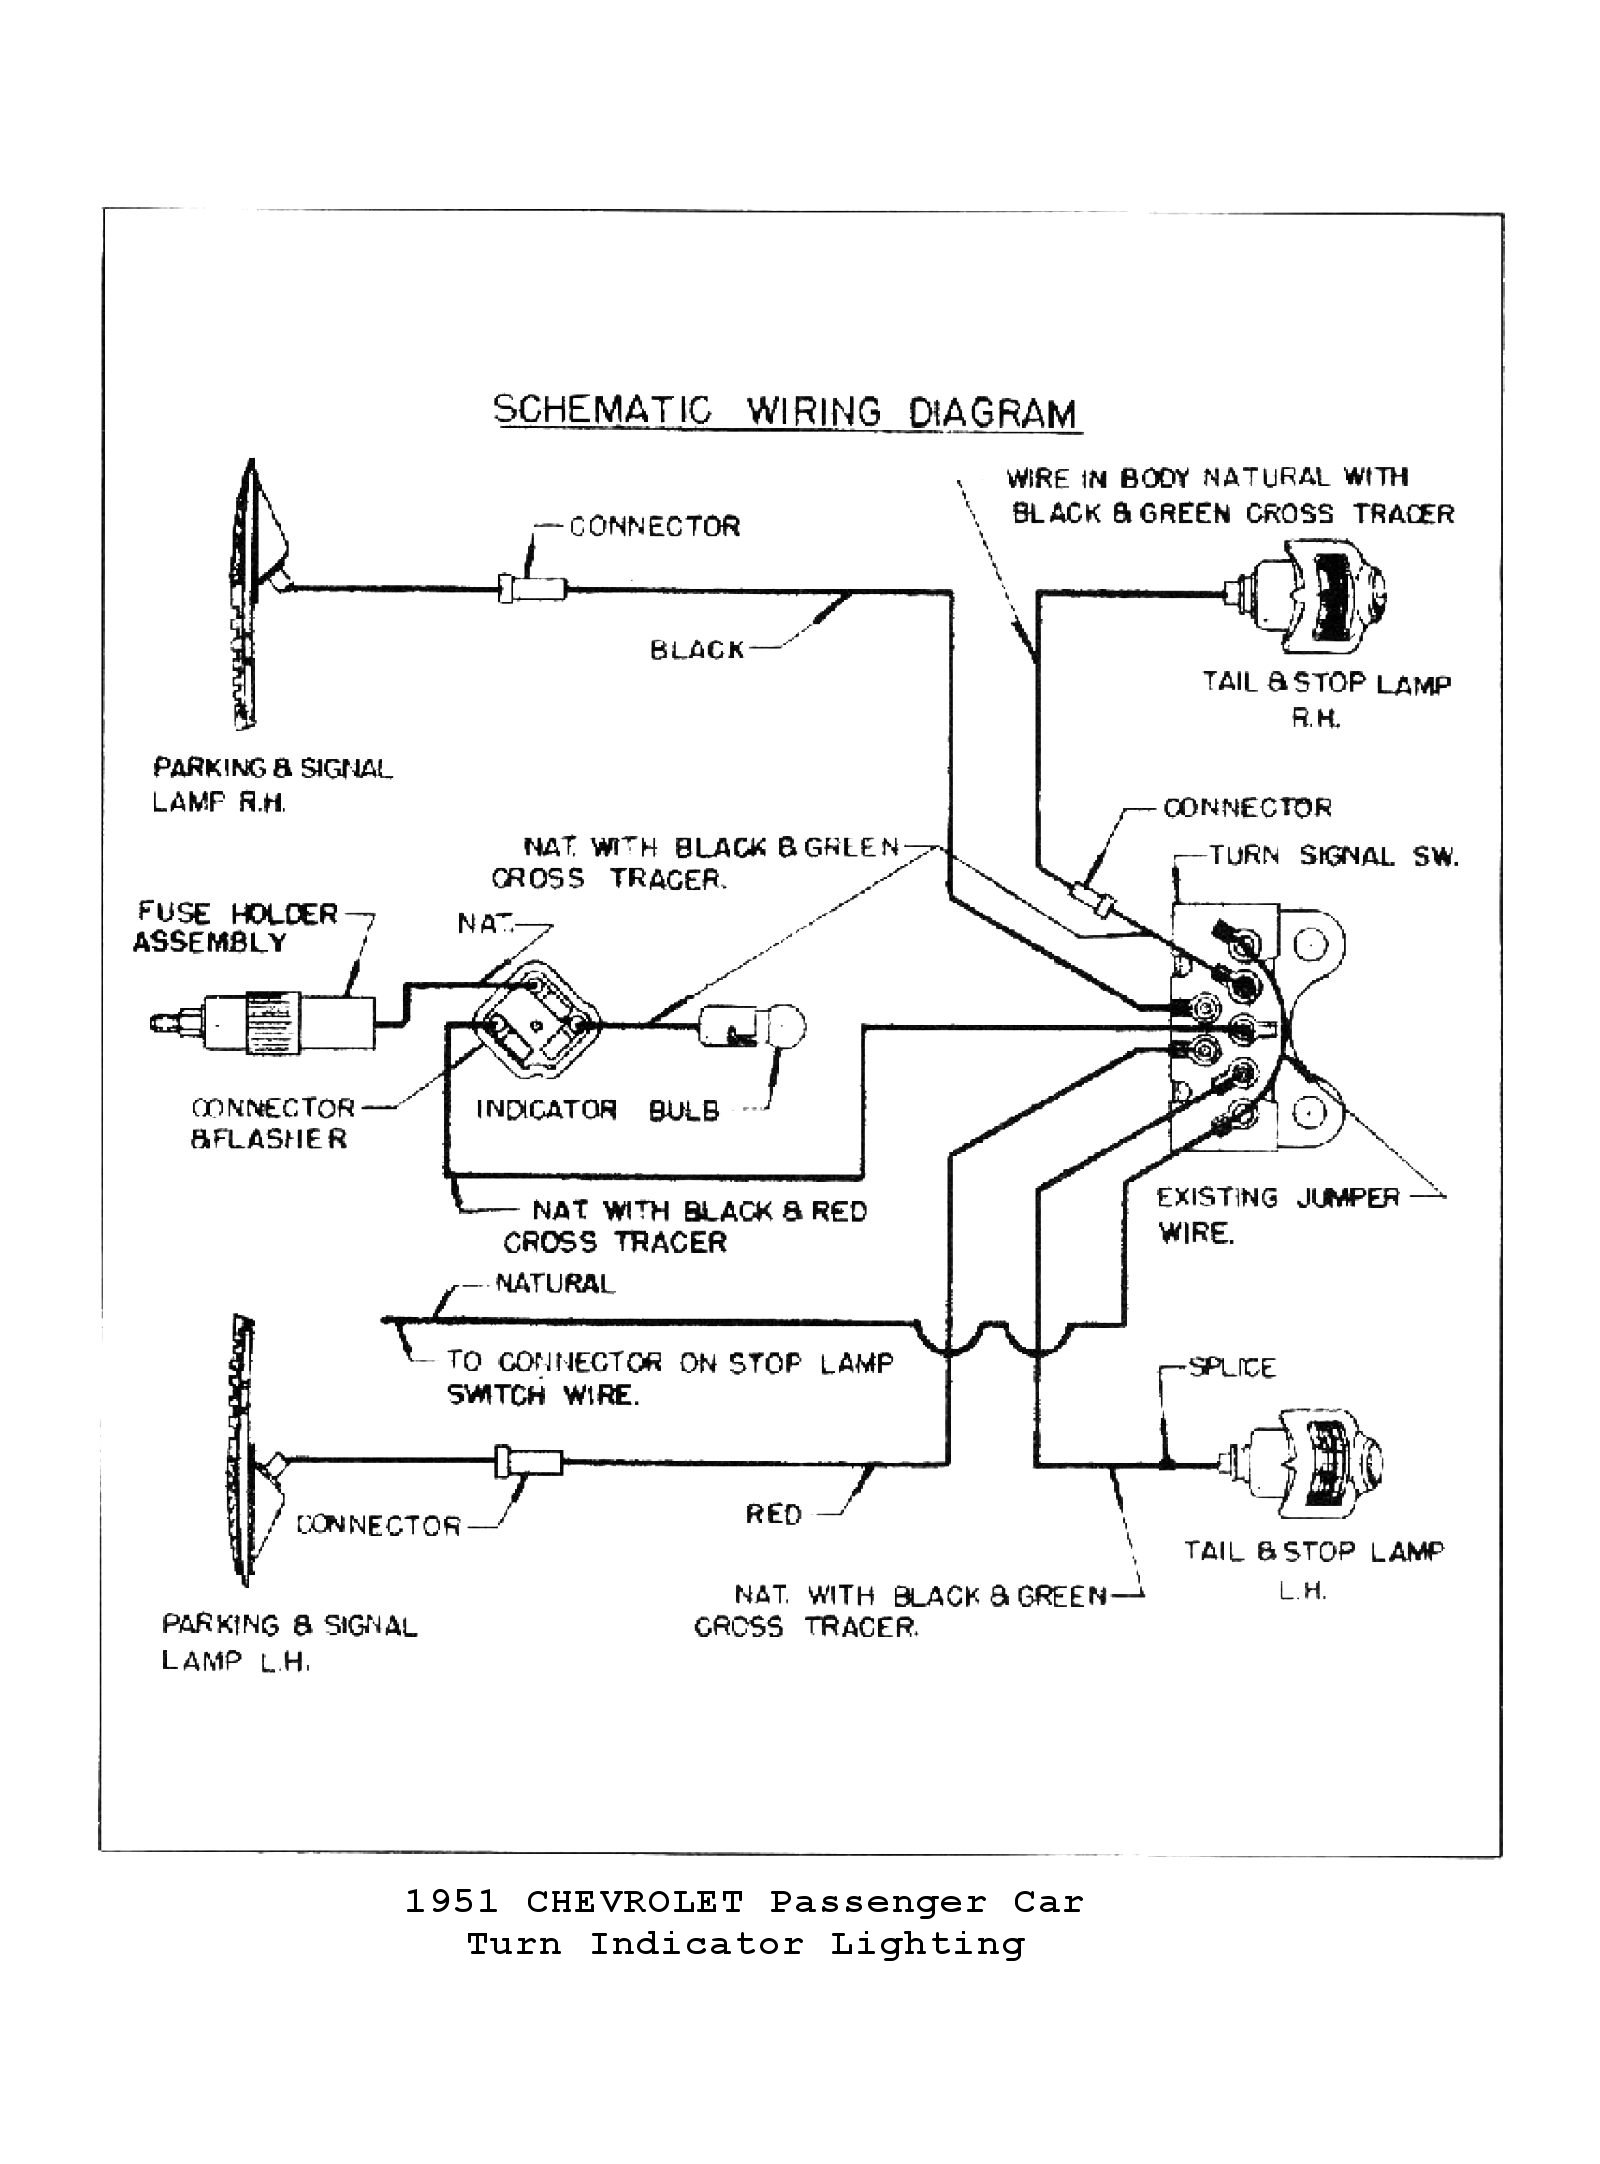 hight resolution of 1957 chevy headlight switch diagram wiring diagram blogs 1975 trans am wiring diagram 1950 chevy truck